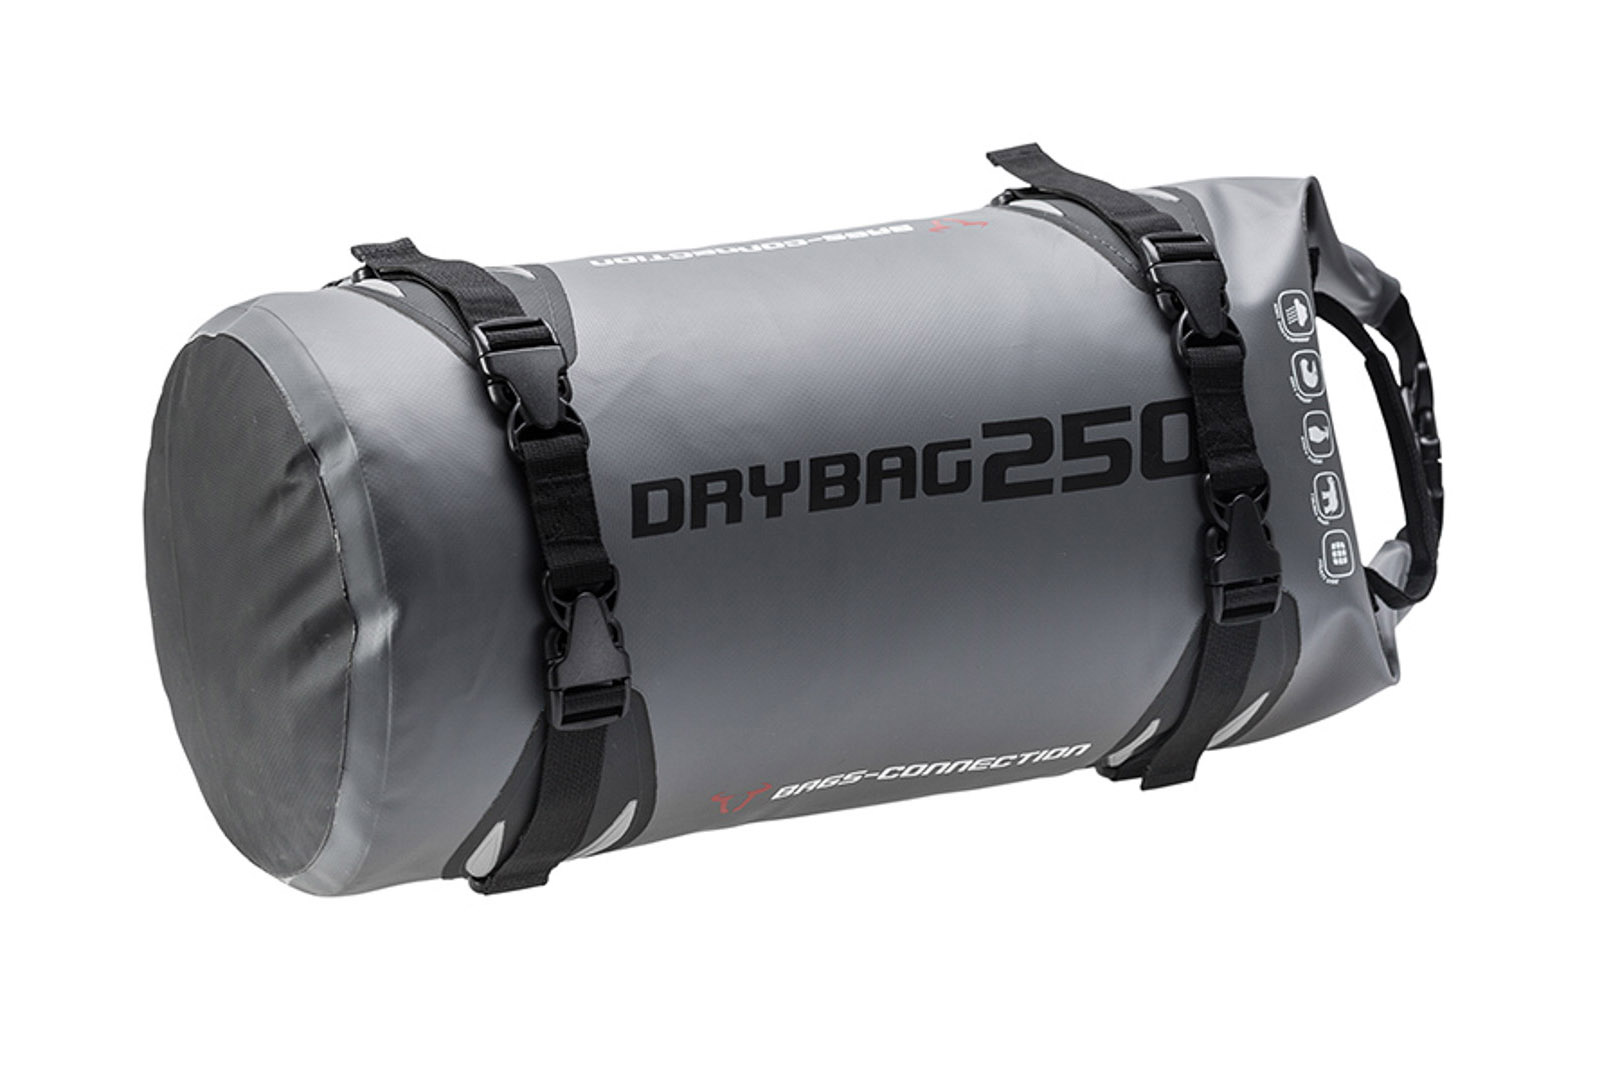 Bags-Connection Drybag 250, harmaa/musta